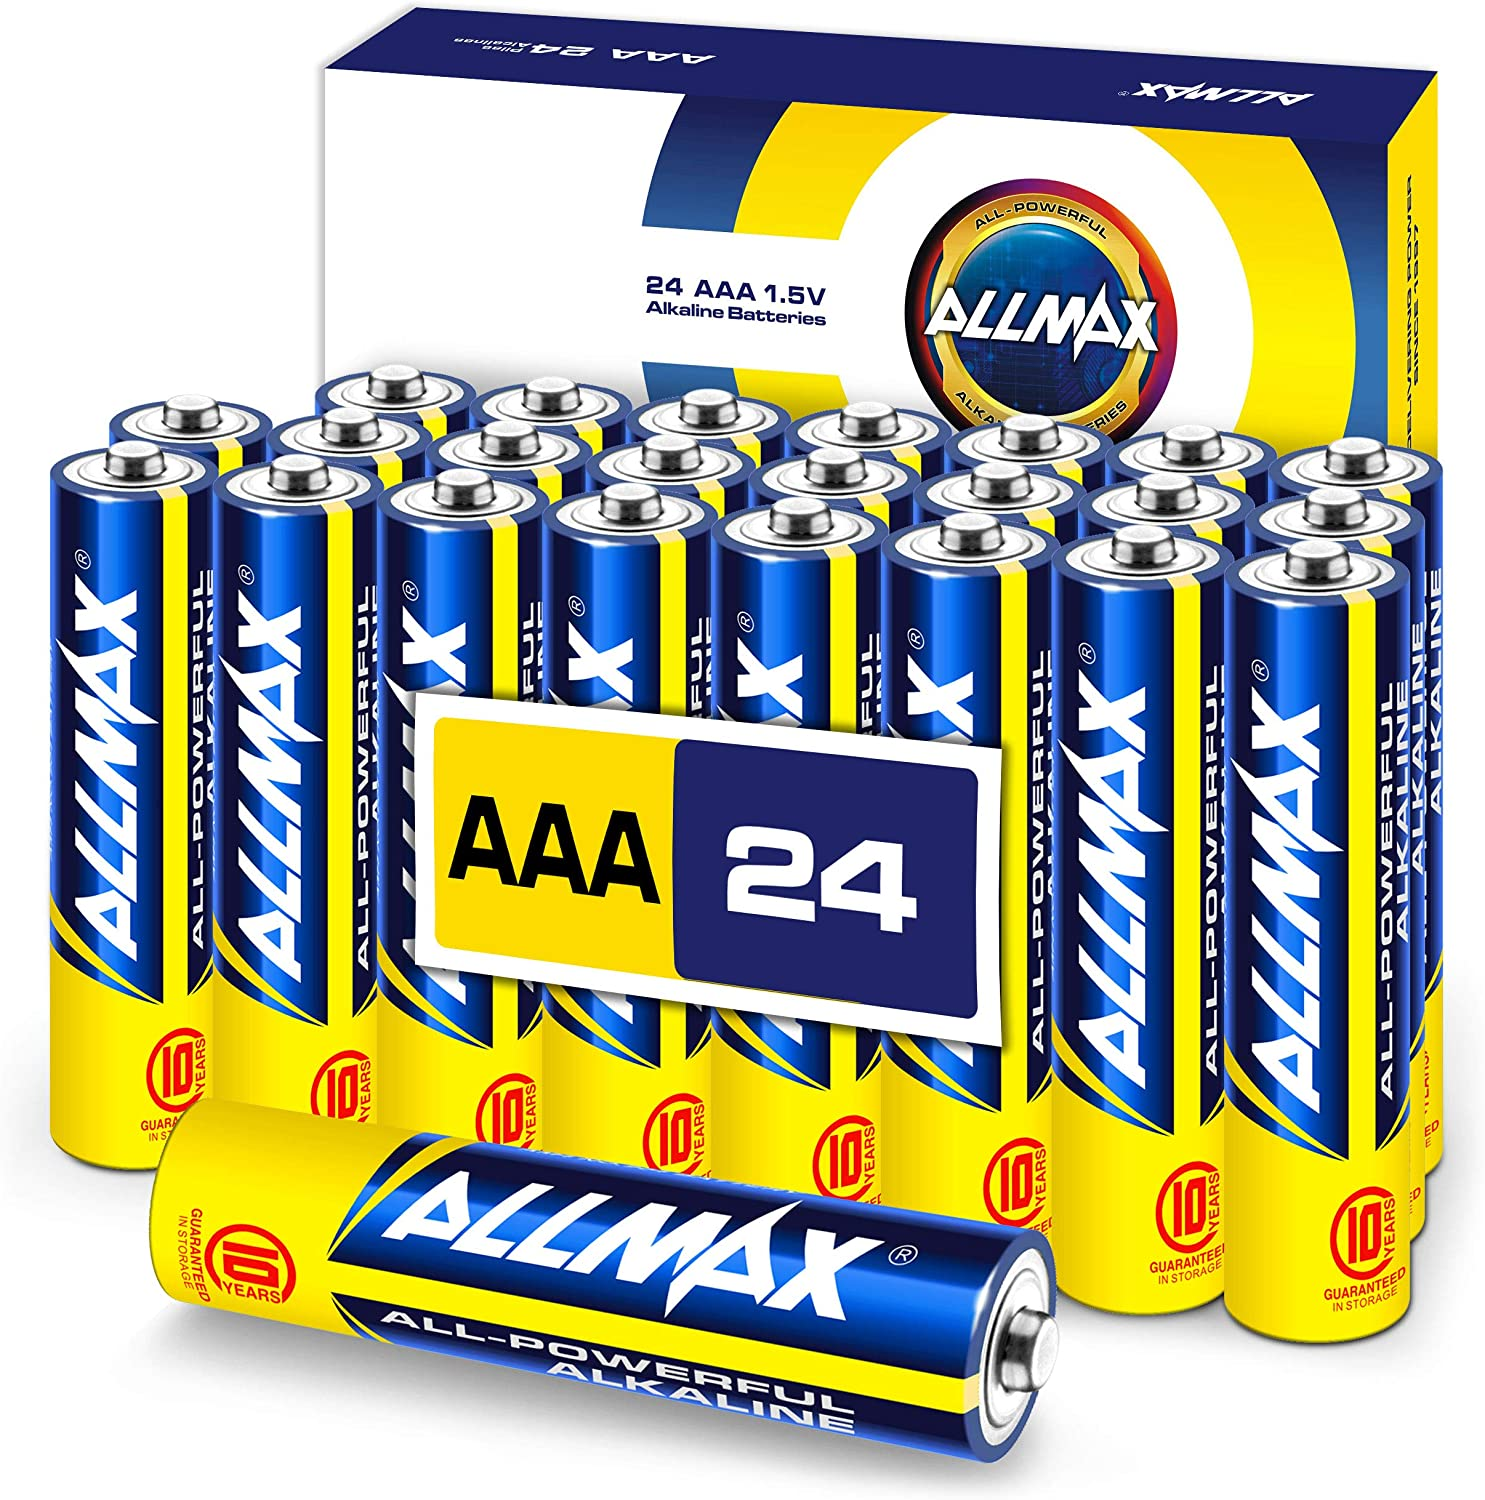 ALLMAX All-Powerful Alkaline Batteries - AAA (24-Pack) - Premium Grade, Ultra Long-Lasting and Leak Proof with EnergyCircle Technology (1.5 Volt)